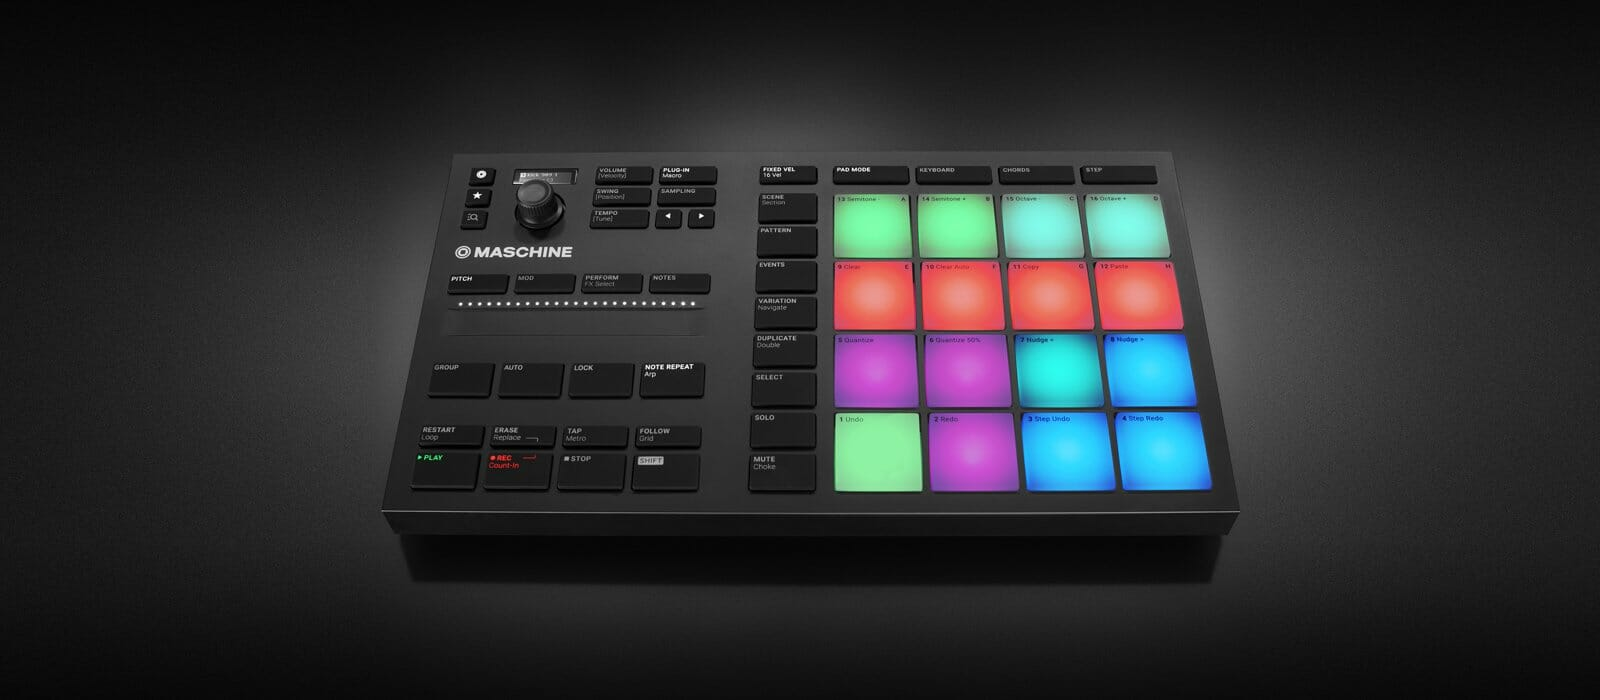 img-ce-gallery-maschine-mikro-mk3_overview_04_gallery-02_05-38823c1a4f1e891eeba37614bfff4ee8-d